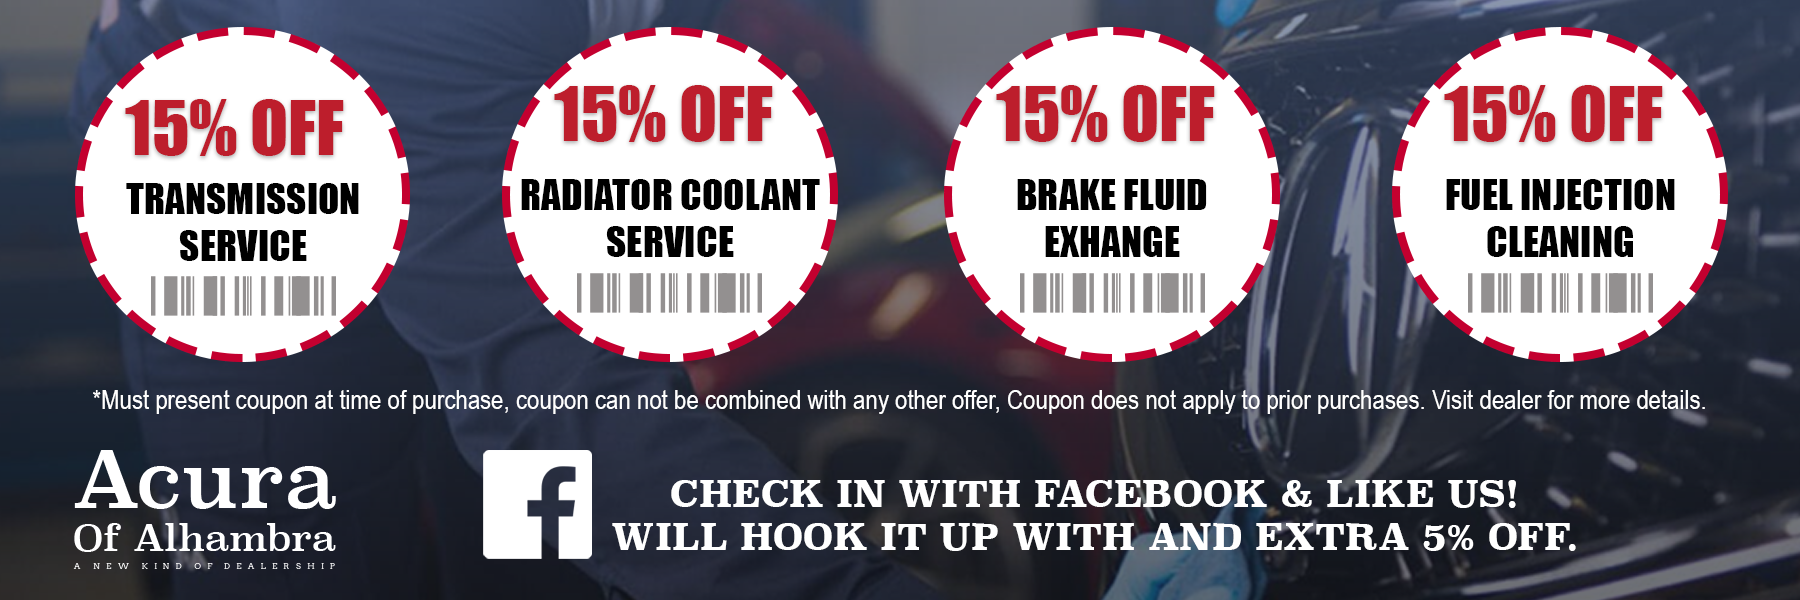 Web-Acura-Service-15%Off-Coupons